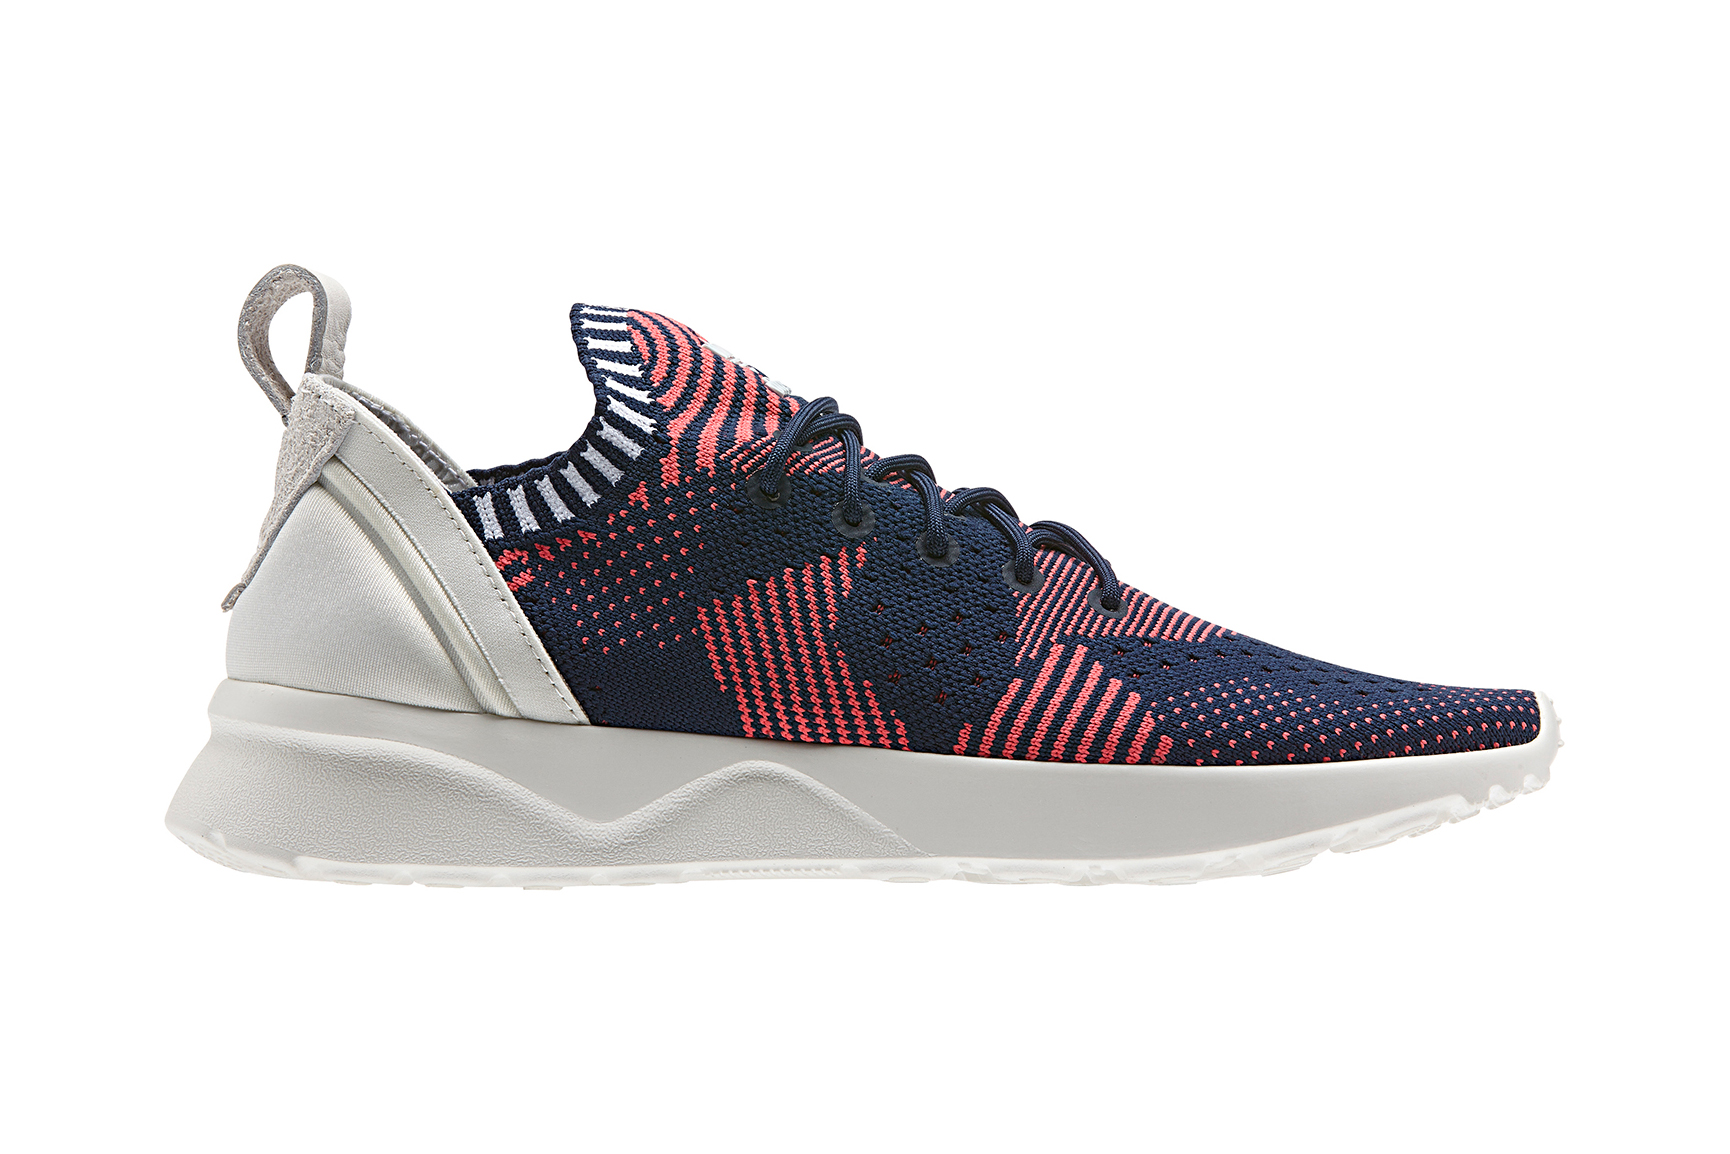 adidas Originals Drops a Primeknit Version of the ZX Flux ADV